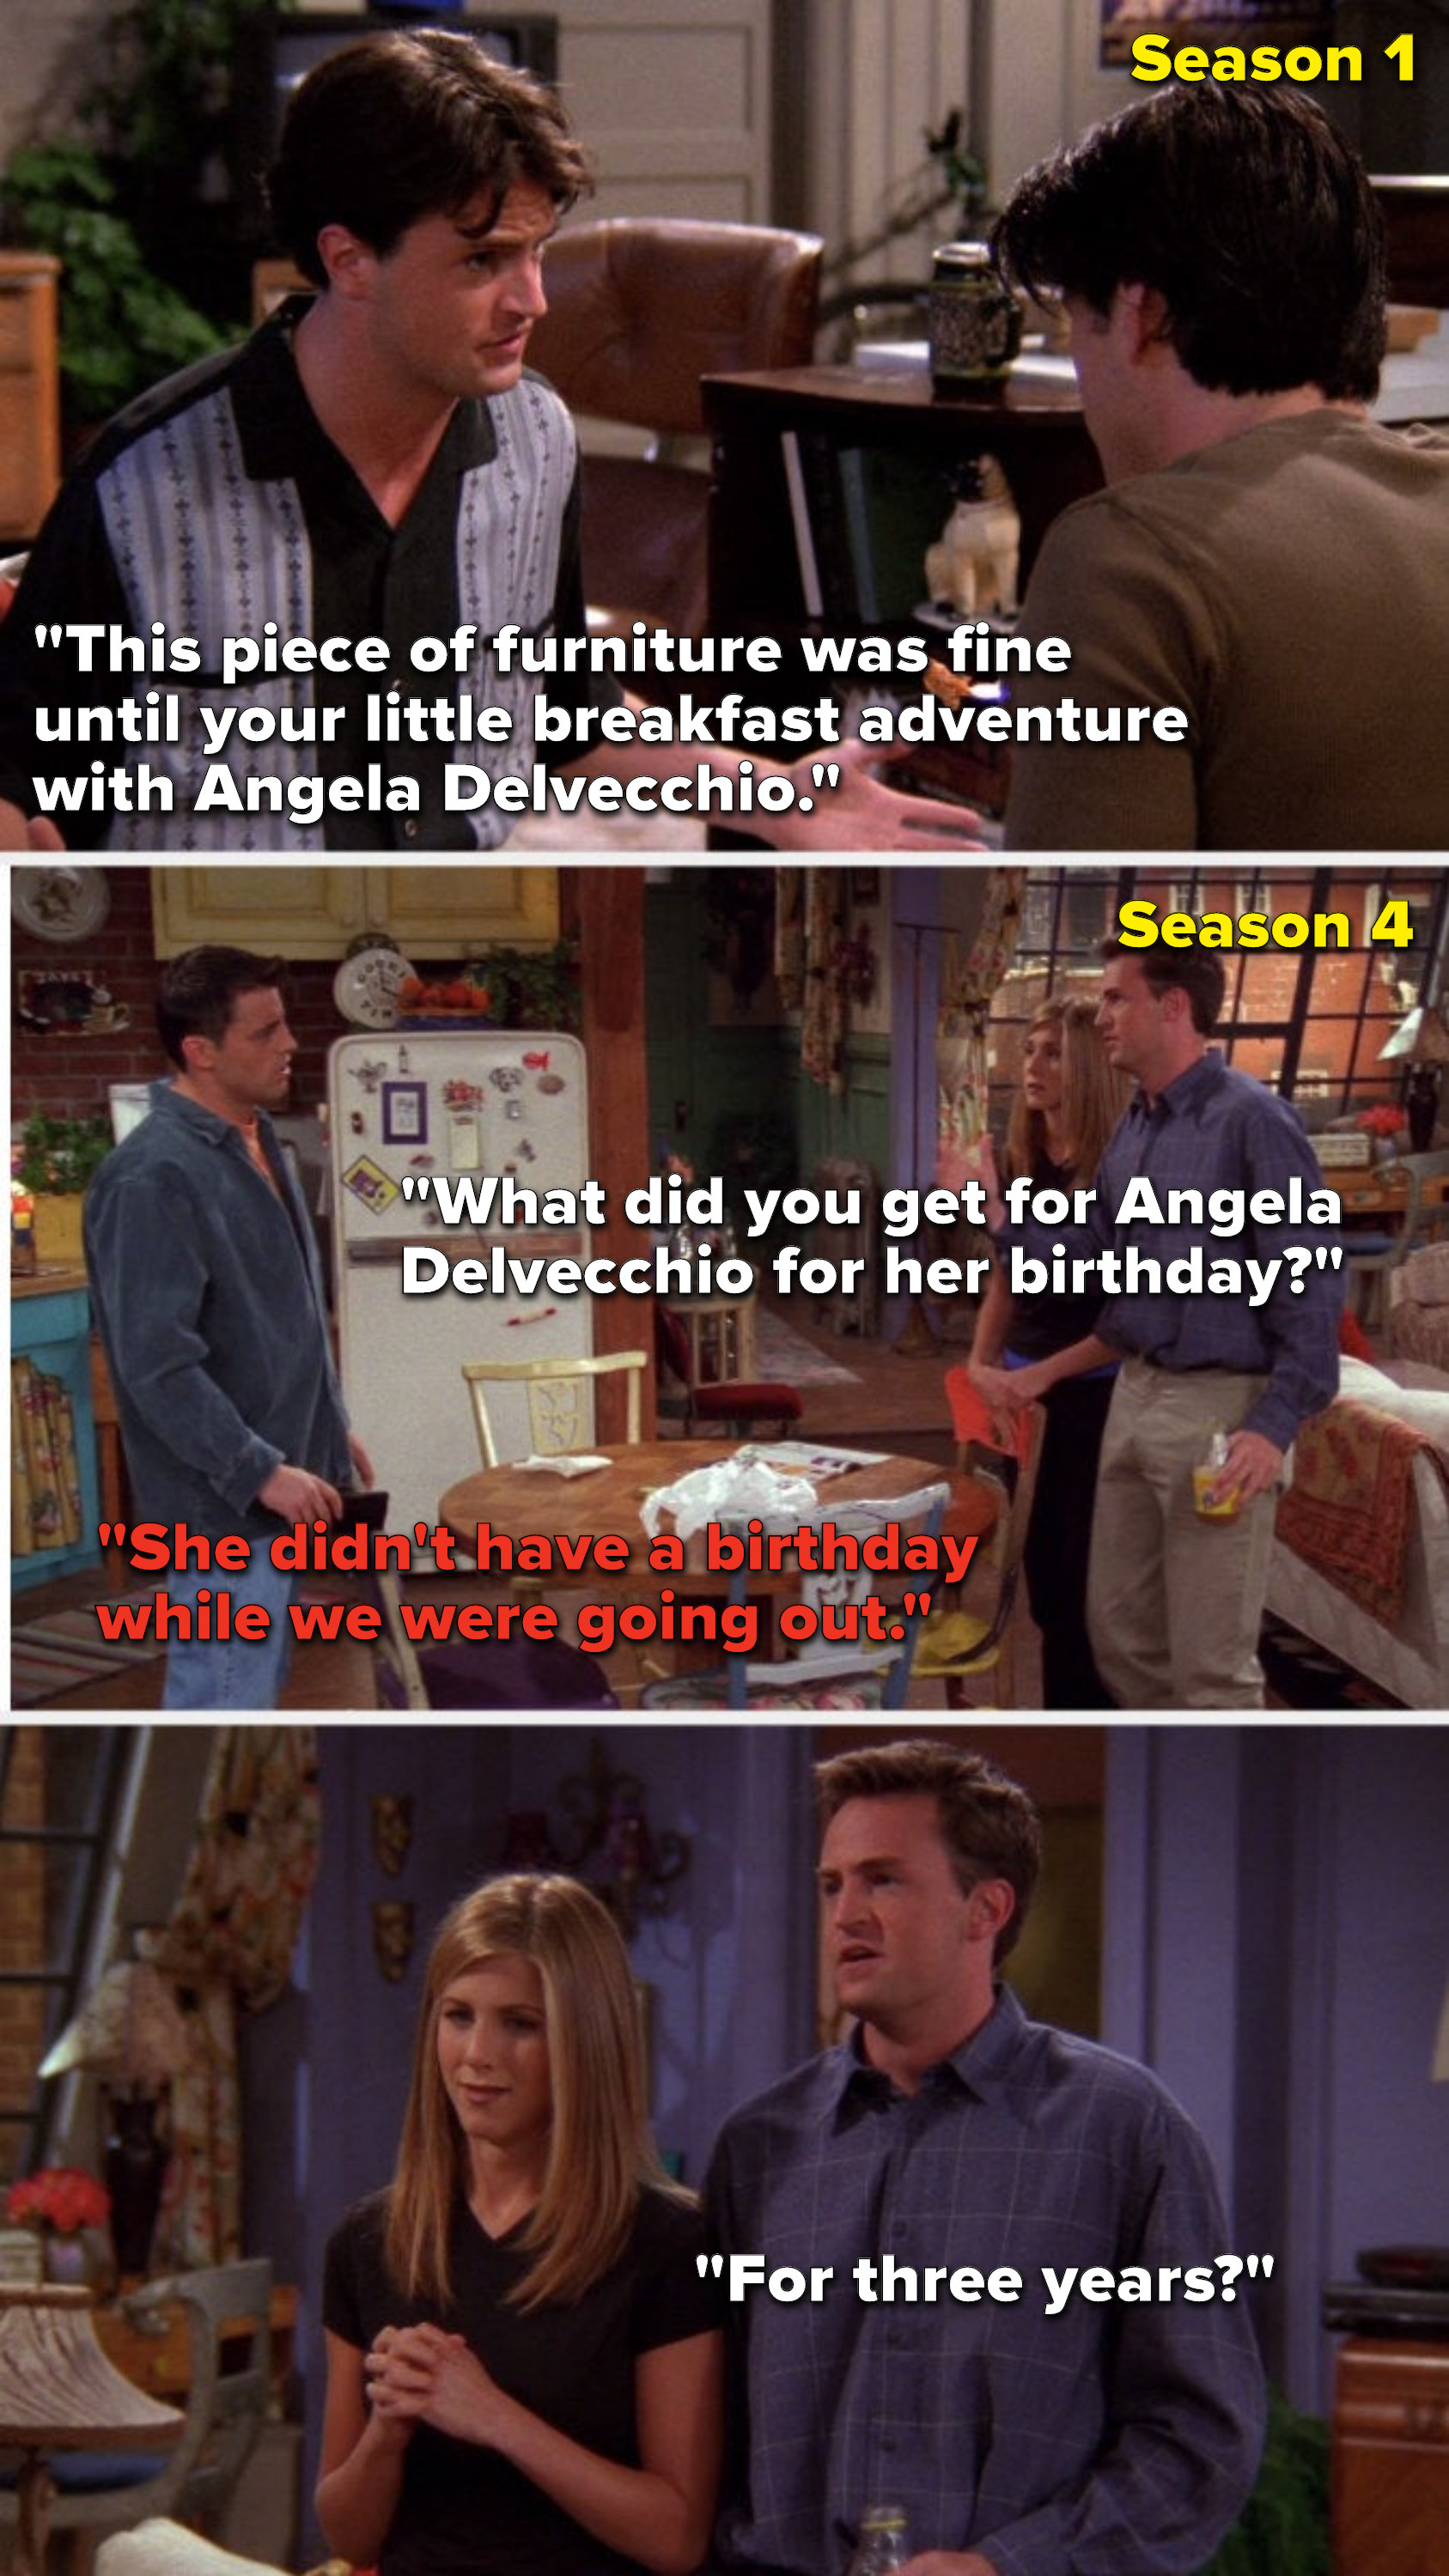 """Chandler says, """"It was fine until your breakfast adventure with Angela Delvecchio,"""" then in Season 4 Chandler says, """"What did you get for Angela Delvecchio"""" Joey says, """"She didn't have a birthday while we were going out,"""" and Chandler asks, """"For 3 years"""""""